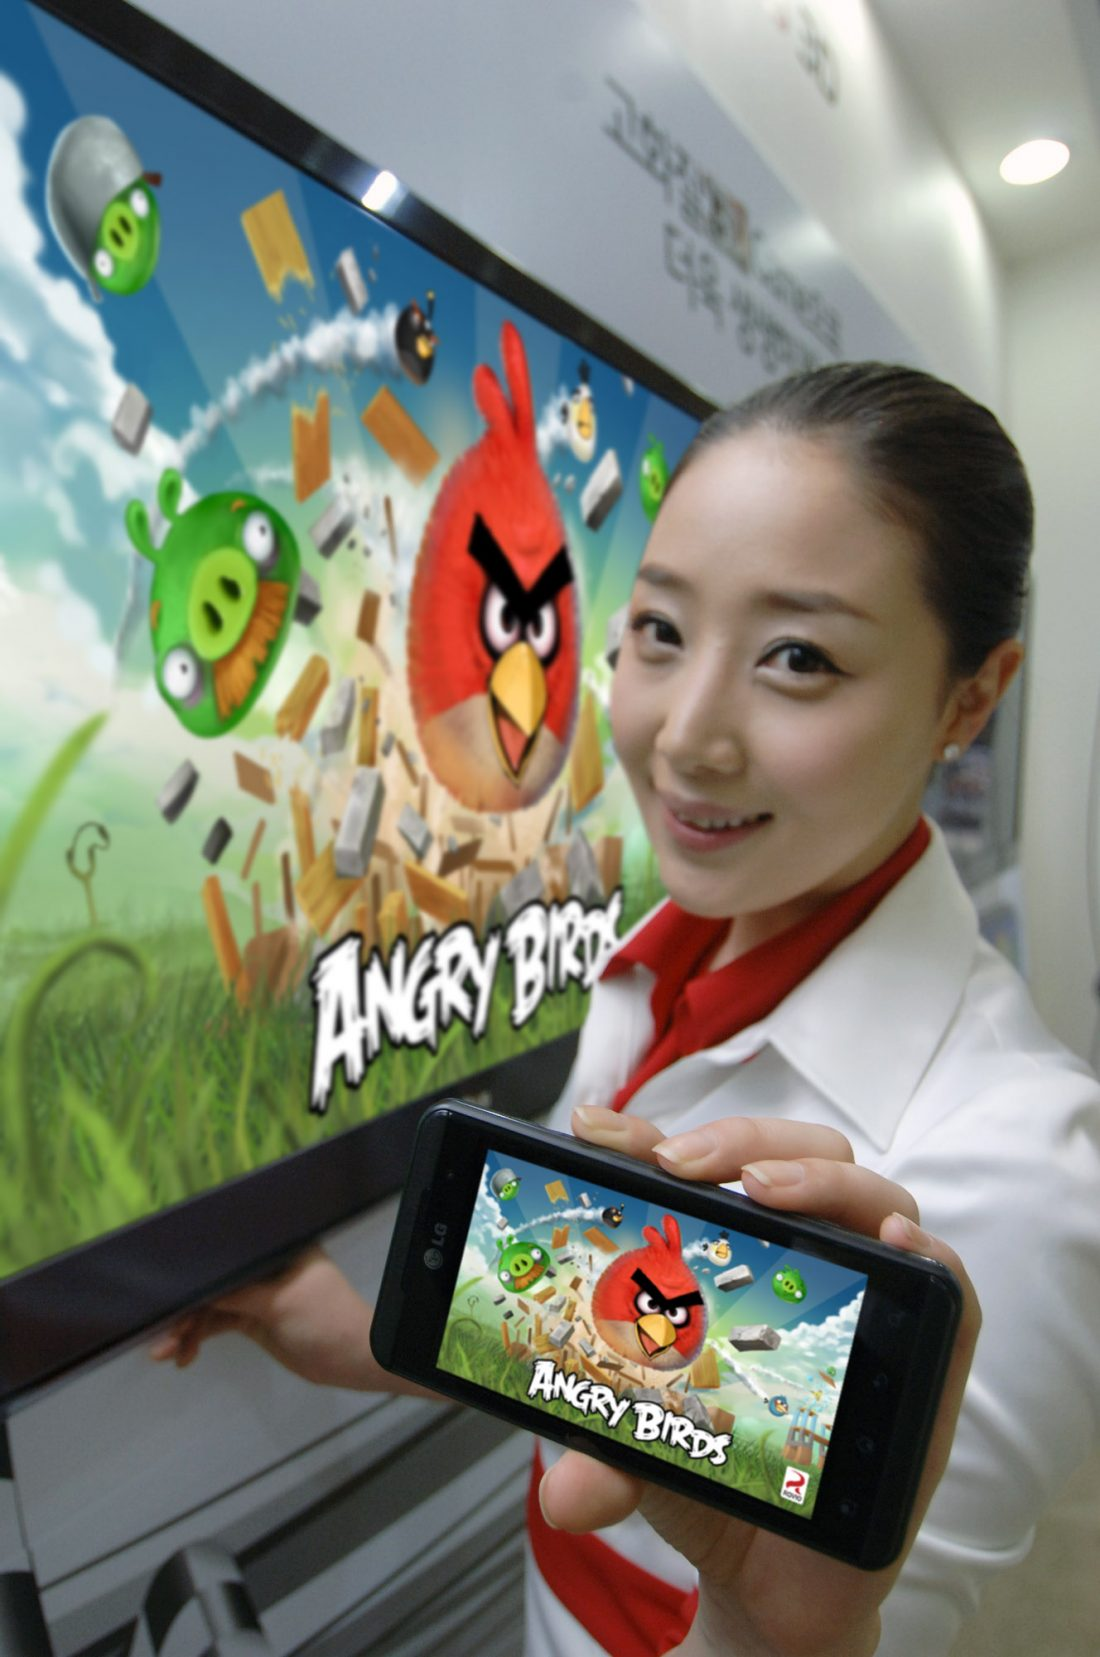 A close view of a model holding an OPTIMUS SERIES SMARTPHONE with ANGRY BIRDS RIO on the screen